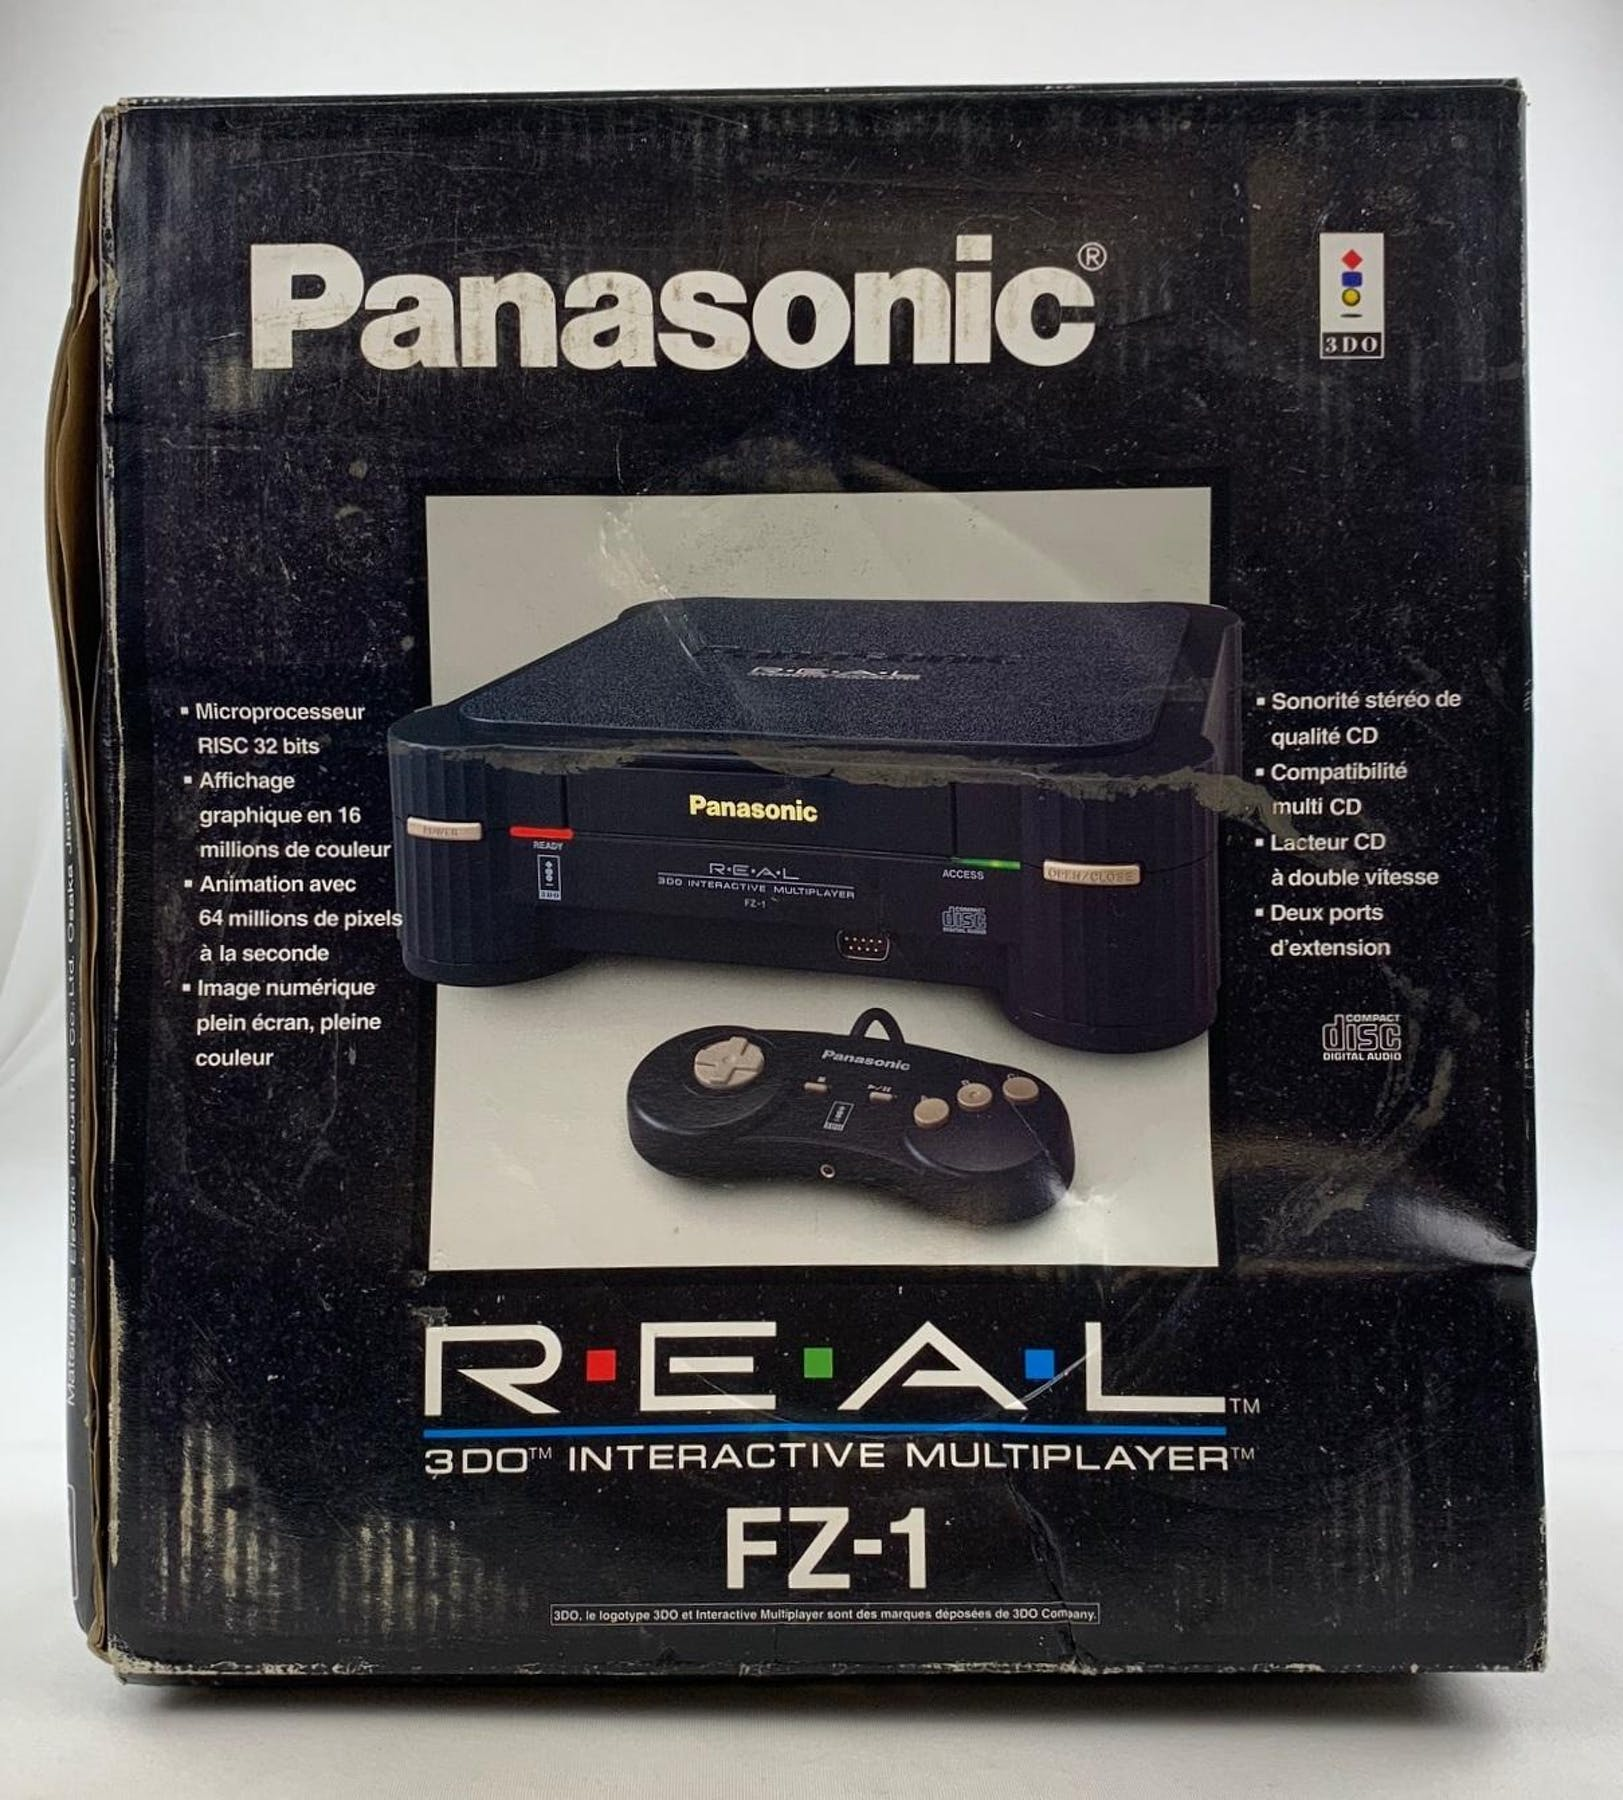 Panasonic 3DO Interactive Multiplayer System Boxed Complete with Games    More! 74dcbbeb3